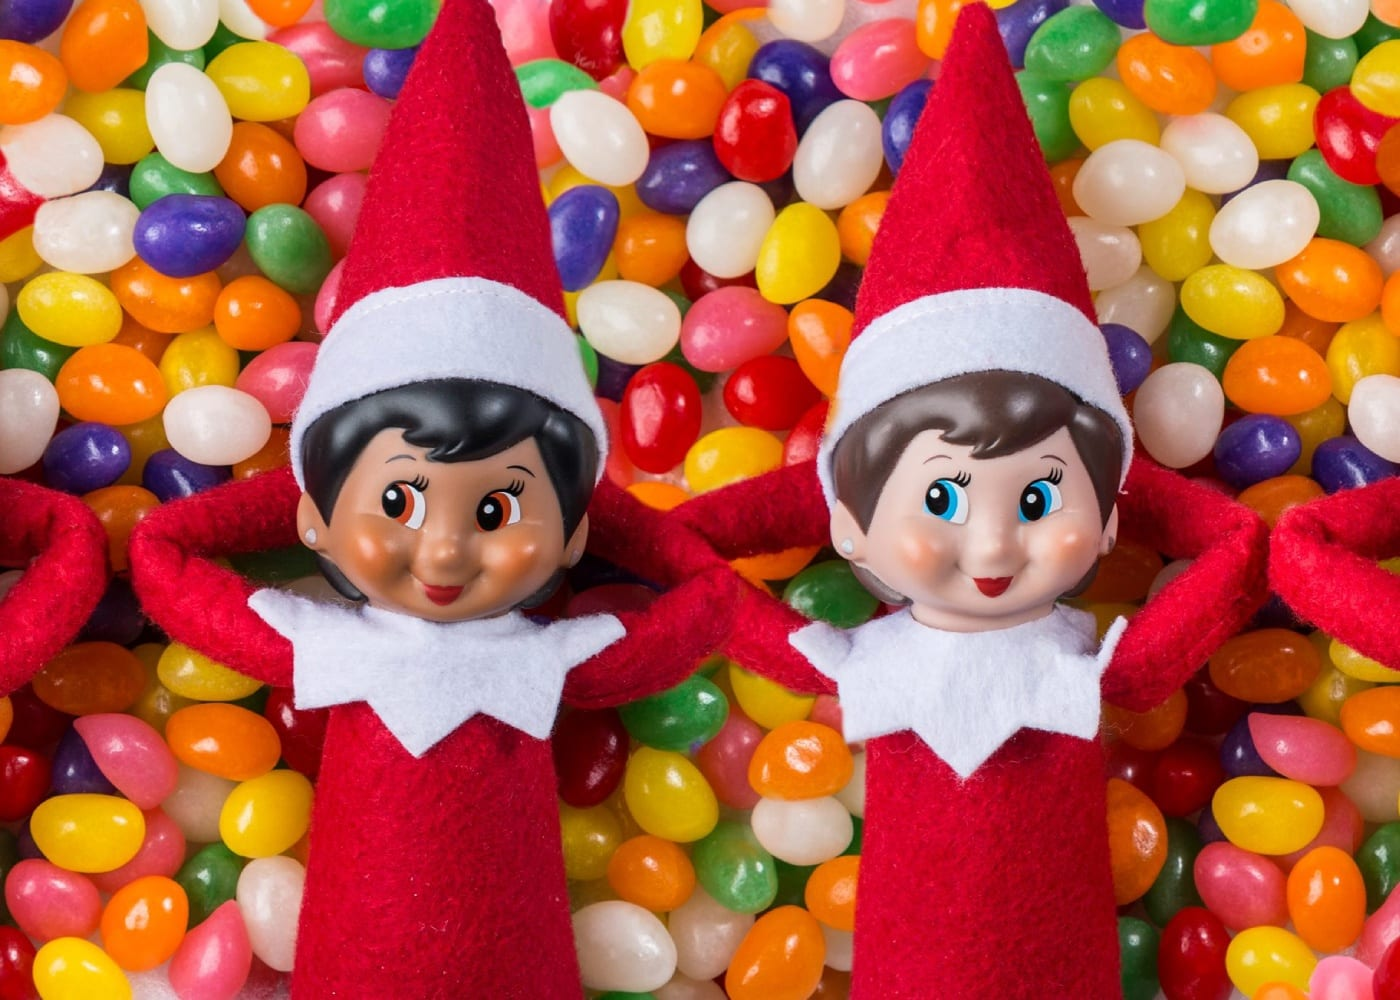 The Elf on the Shelf: a Christmas tradition to treasure or a marketing ploy?